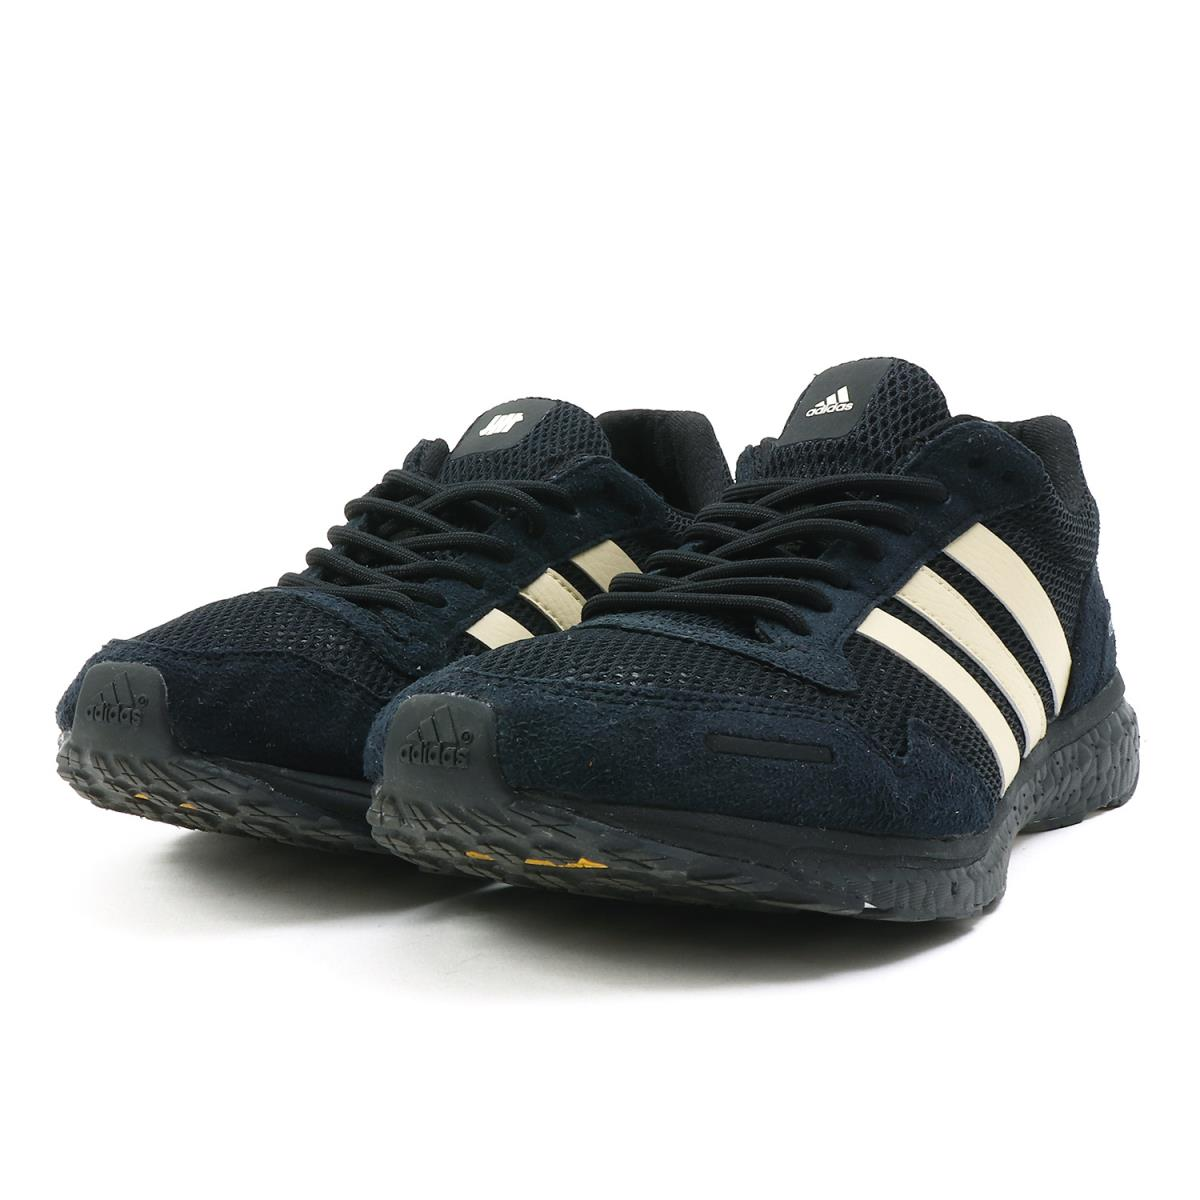 separation shoes 76037 06b3c UNDEFEATED (Andy fee Ted) 18S/S X adidas ADIZERO ADIOS UNDFTD (B22483)  black US9(27cm)